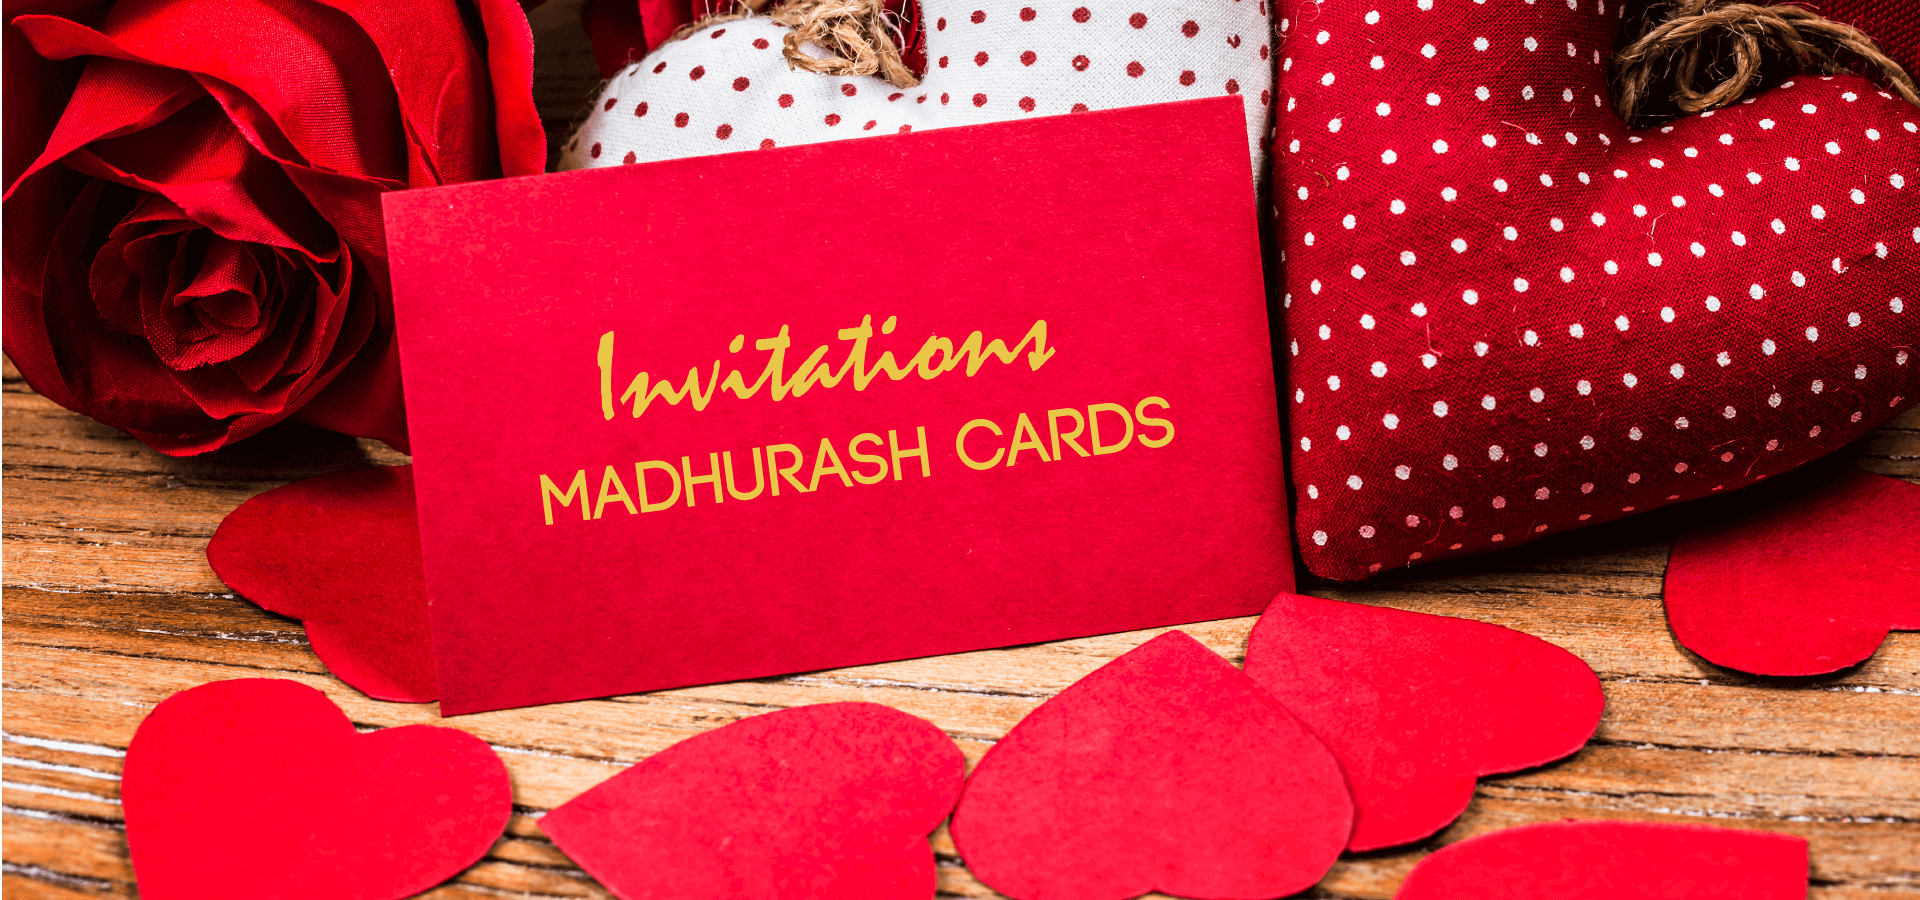 Domain & Hosting for Madhurash Cards